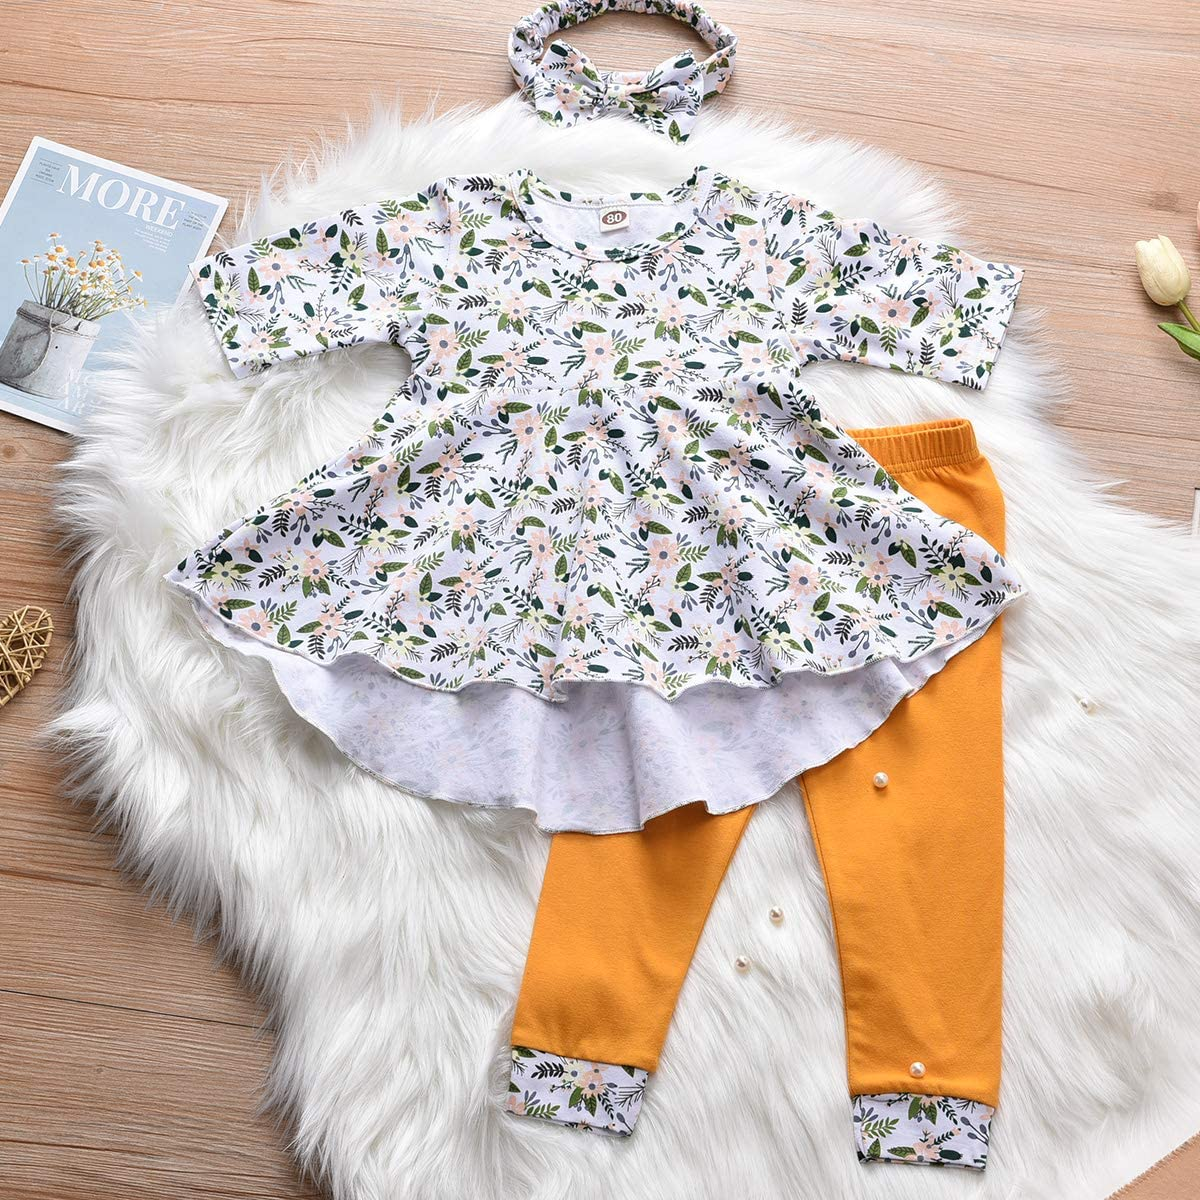 Fioukiay Toddler-Girls-Fall-Clothes-Set Little Girls Highlow Tunic Tops+Leggings Outfit Boutique Clothing